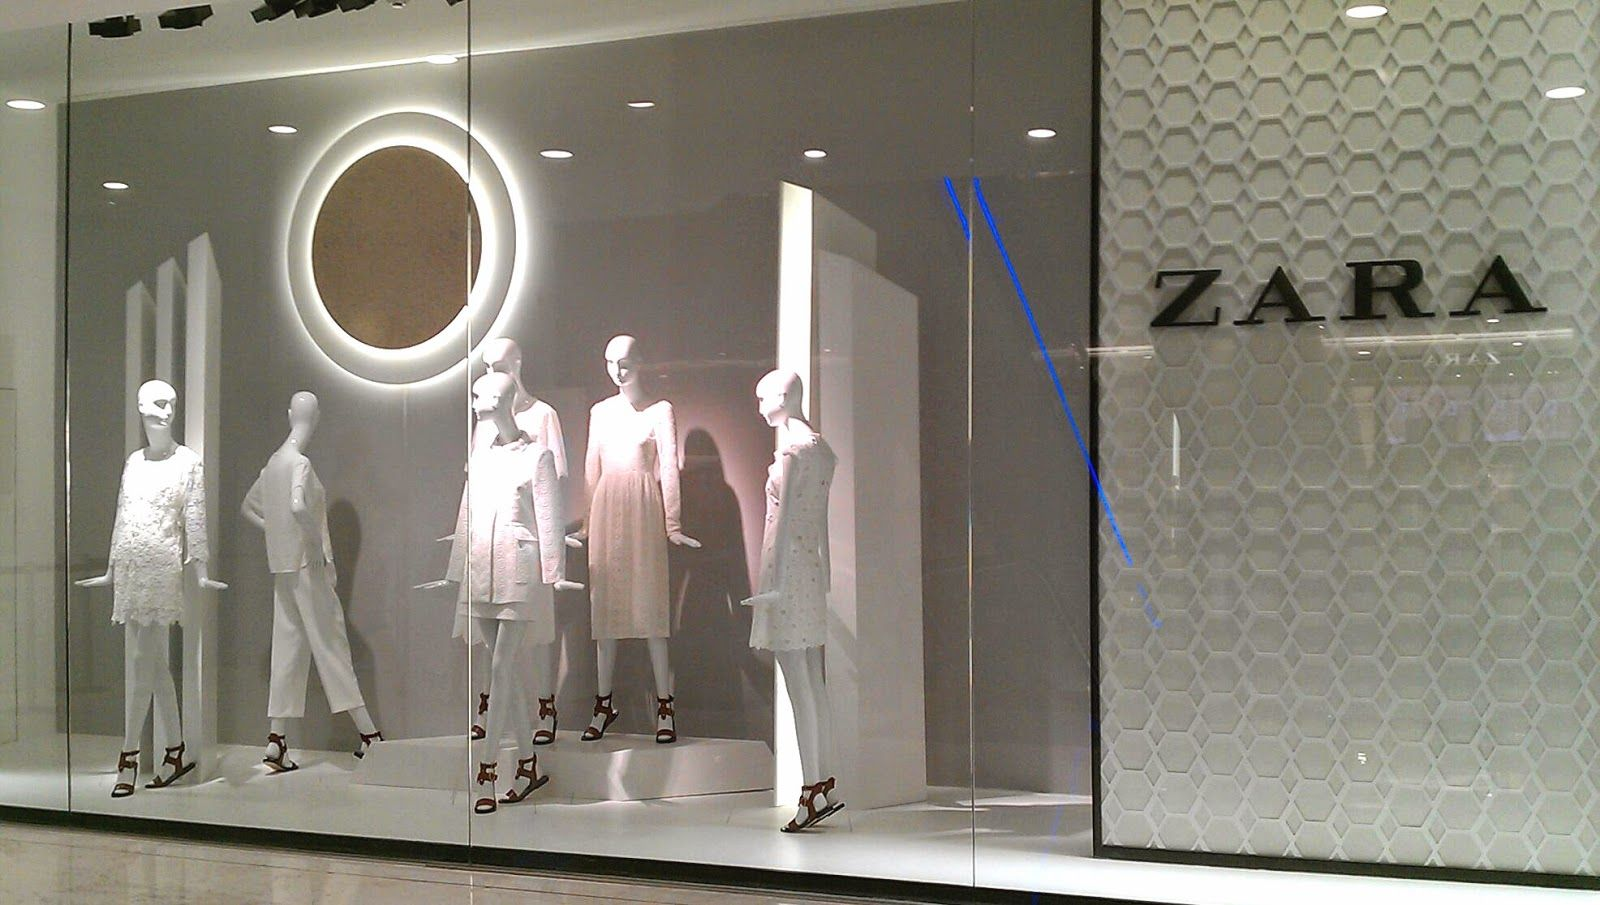 Exhibition Stand For Zara : Zara emquartier window display bangkok thailand